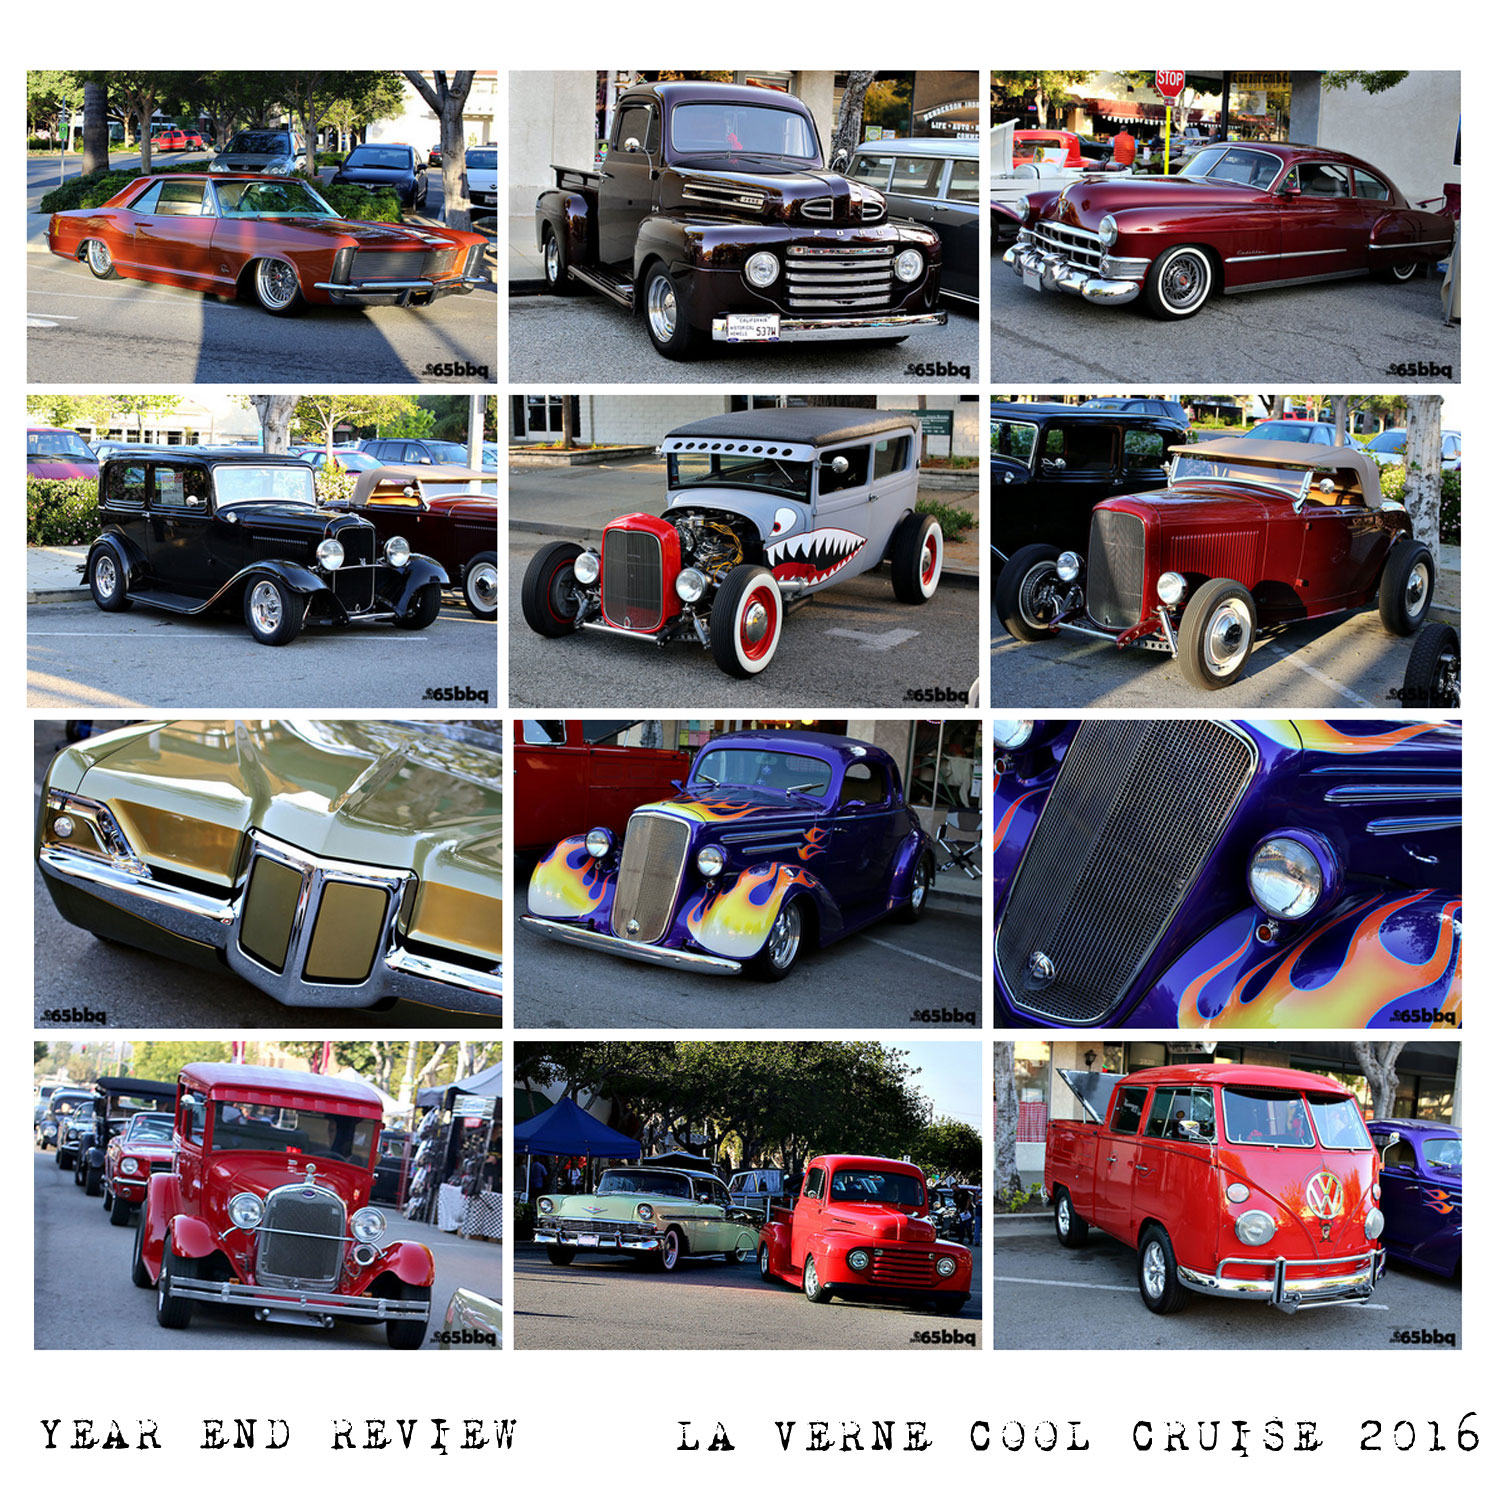 year end la verne cool cruise 2016 65bbq